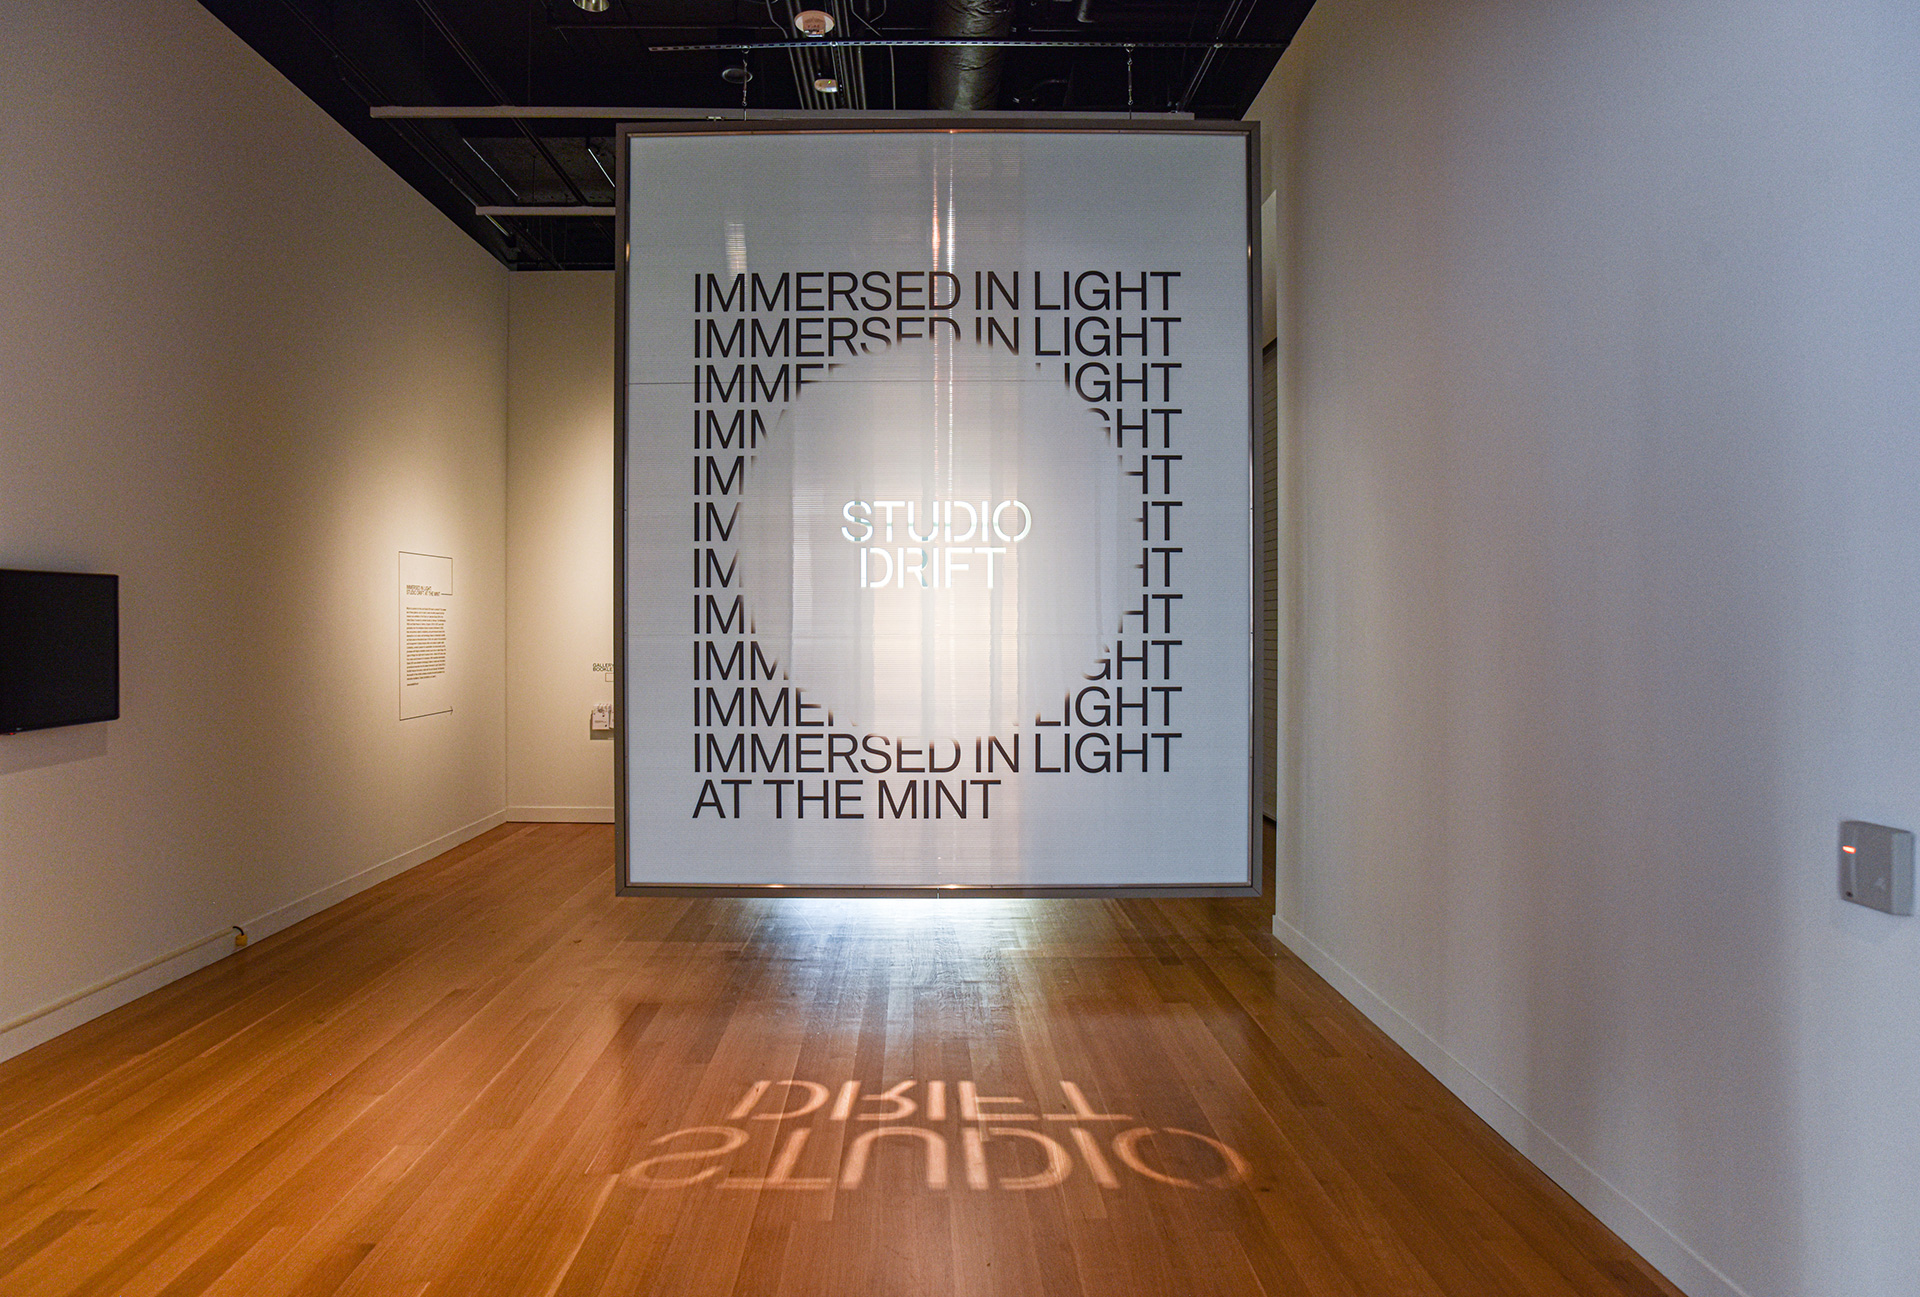 Studio Drift. 2019, installation at the Mint Museum, Charlotte, North Carolina | Immersed in Light | Studio Drift | The Mint Museum | STIRworld